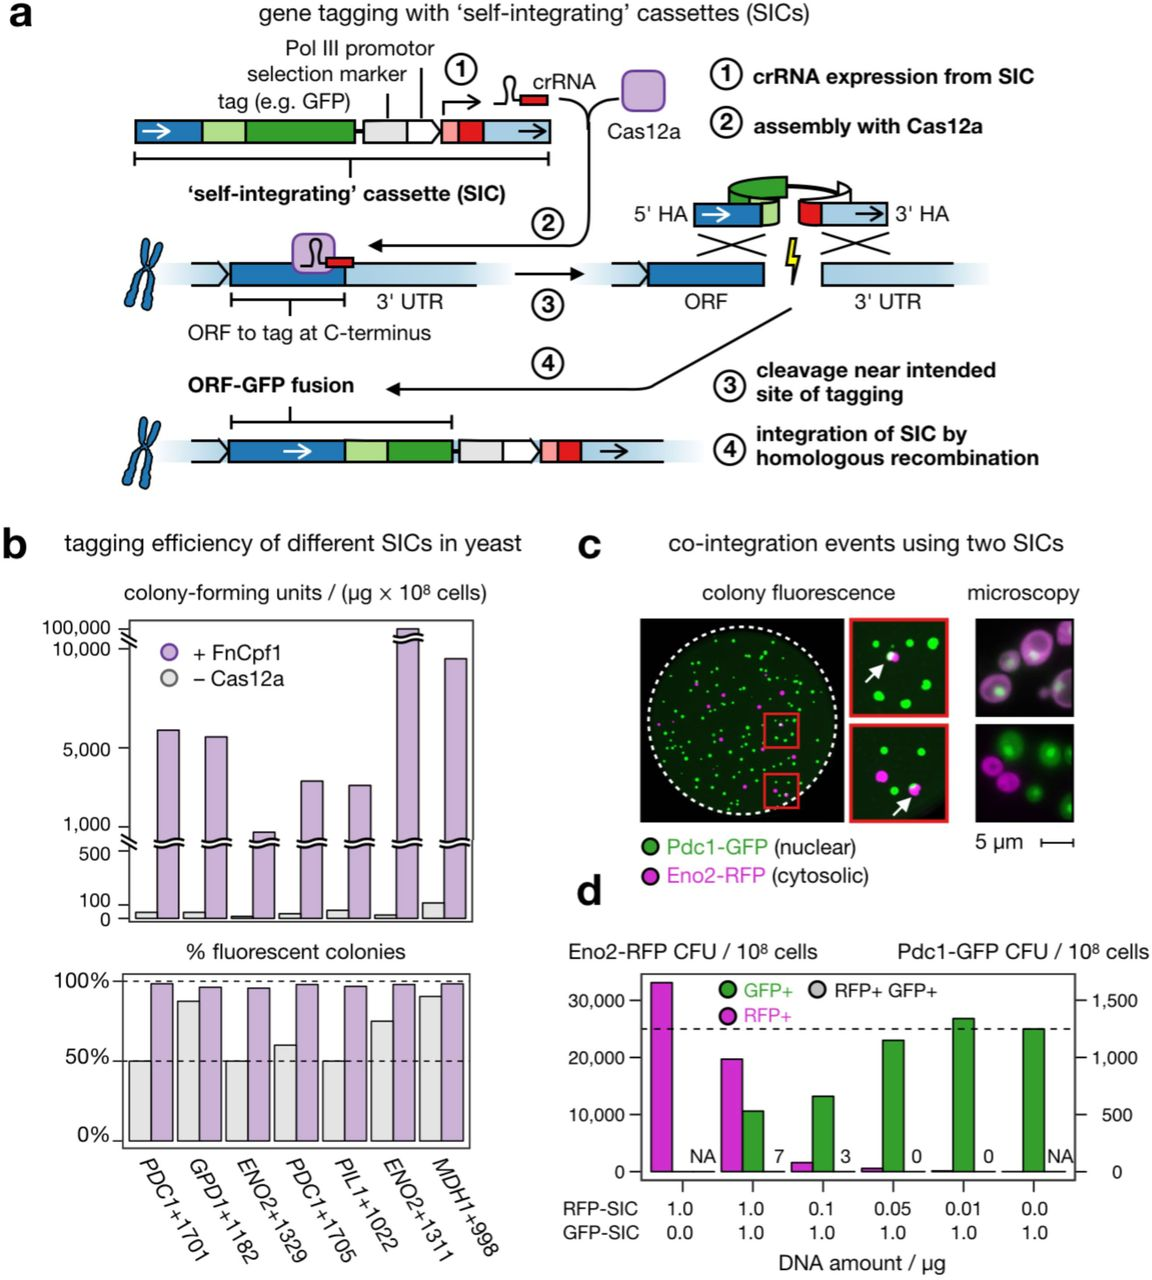 CRISPR-Cas12a-assisted single gene-tagging in yeast. ( a ) After transformation of the self-integrating cassette (SIC) into a cell, the crRNA expressed from the SIC directs a CRISPR-Cas12a endonuclease to the genomic target locus where the DNA double-strand is cleaved. The lesion is repaired by homologous recombination using the SIC as repair template so that an in-frame gene fusion is observed. ( b ) Efficiency of seven SICs of C-terminal tagging of highly expressed open-reading frames (ORFs) with a fluorescent protein reporter, in the absence (grey) or presence (purple) of FnCas12a. Colony-forming units (CFUs) per microgram of DNA and cells used for transformation, and integration fidelity by colony fluorescence are shown. ( c ) Co-integration events upon simultaneous transformation of two SICs directed against either ENO2 or PDC1 . Both SICs confer resistance to Geneticin (G-418), but contain different fluorescent protein tags. Colonies exhibiting green and red fluorescence (arrows) were streaked to identify true co-integrands. False-color fluorescence microscopy images show nuclear Pdc1-GFP in green and the cytosolic Eno2-RFP in magenta; scale bar 5 µm. ( d ) Titration of both SICs against each other (lower panel) with evaluation of GFP-tagged (GFP+), RFP-tagged (RFP+) or co-transformed (GFP+RFP+) colonies. Panels b–d: Source data are provided as a Source Data file.